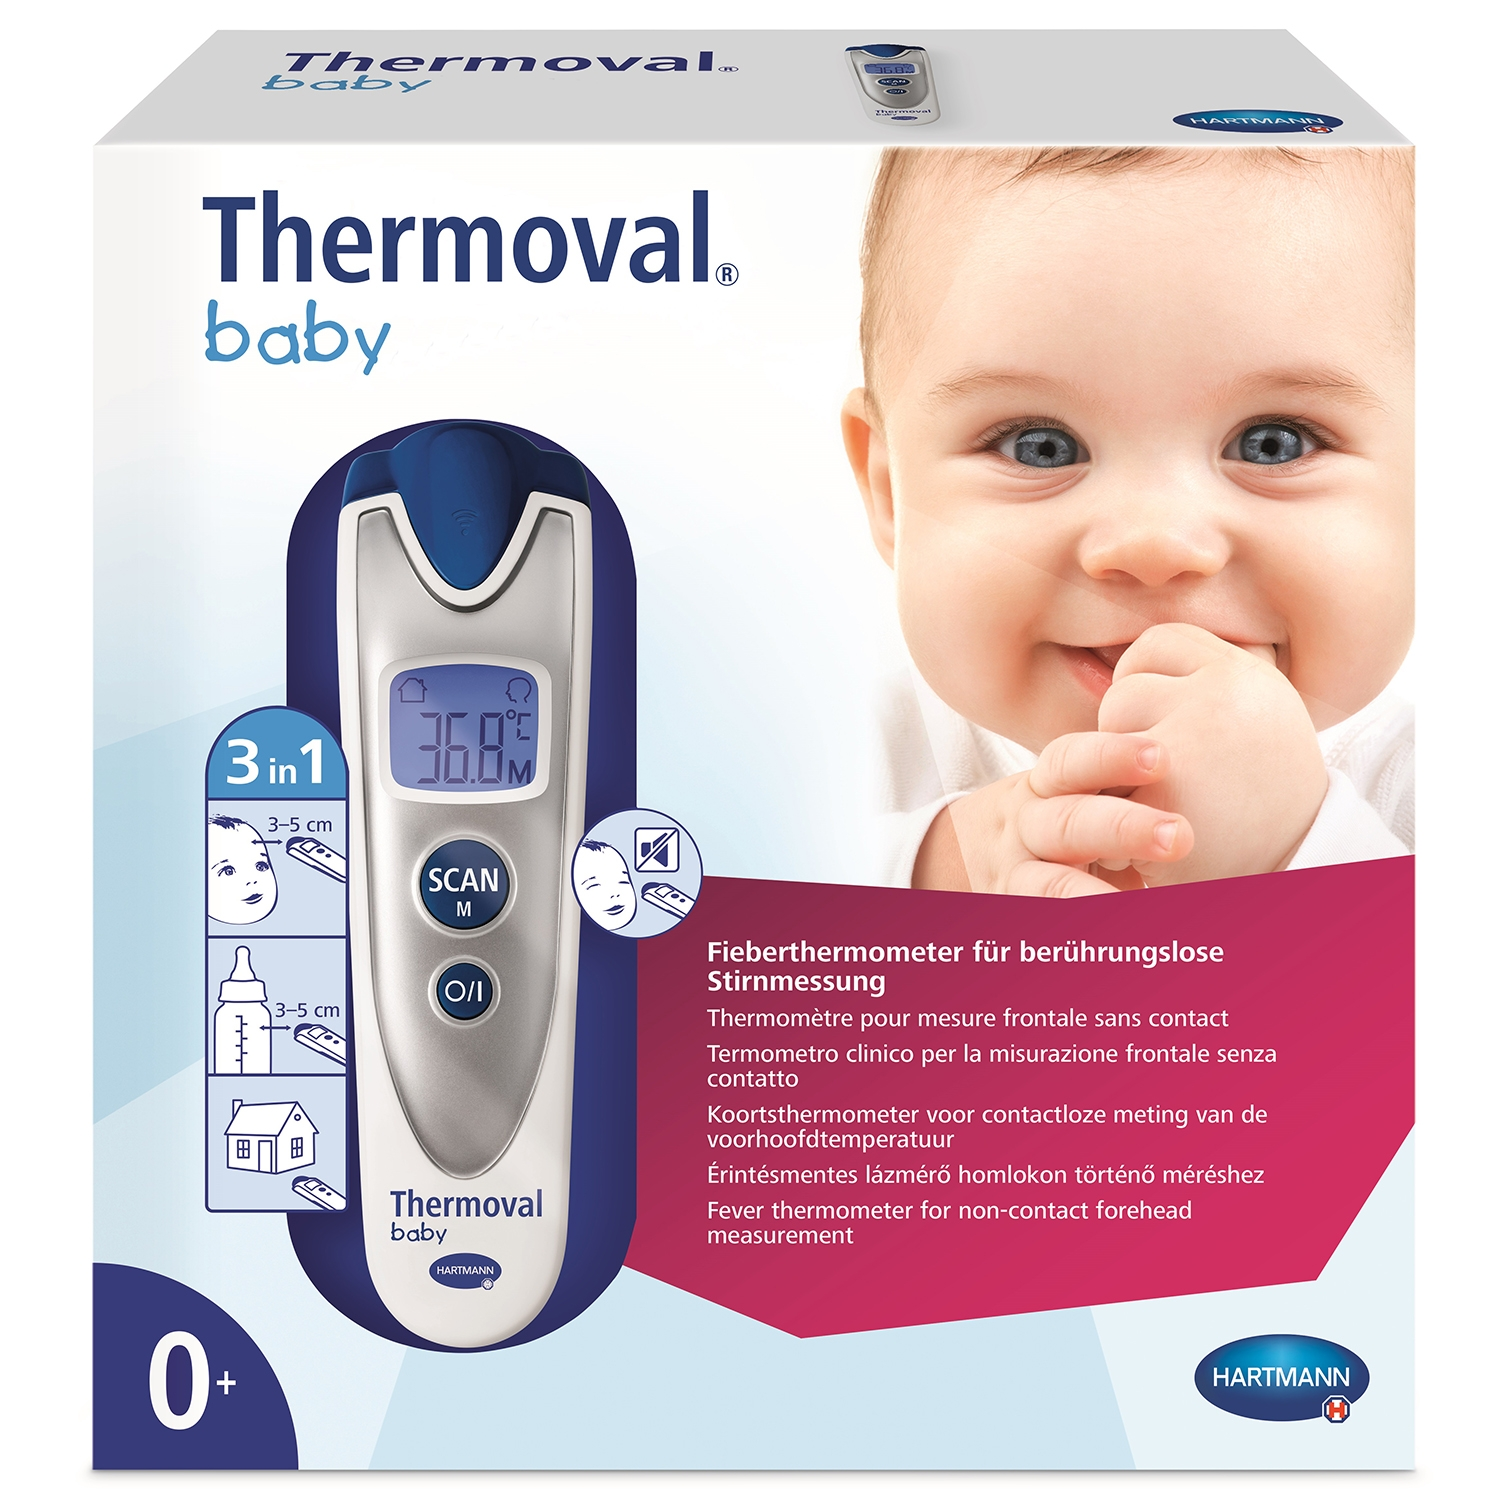 Thermometer Thermoval baby sense